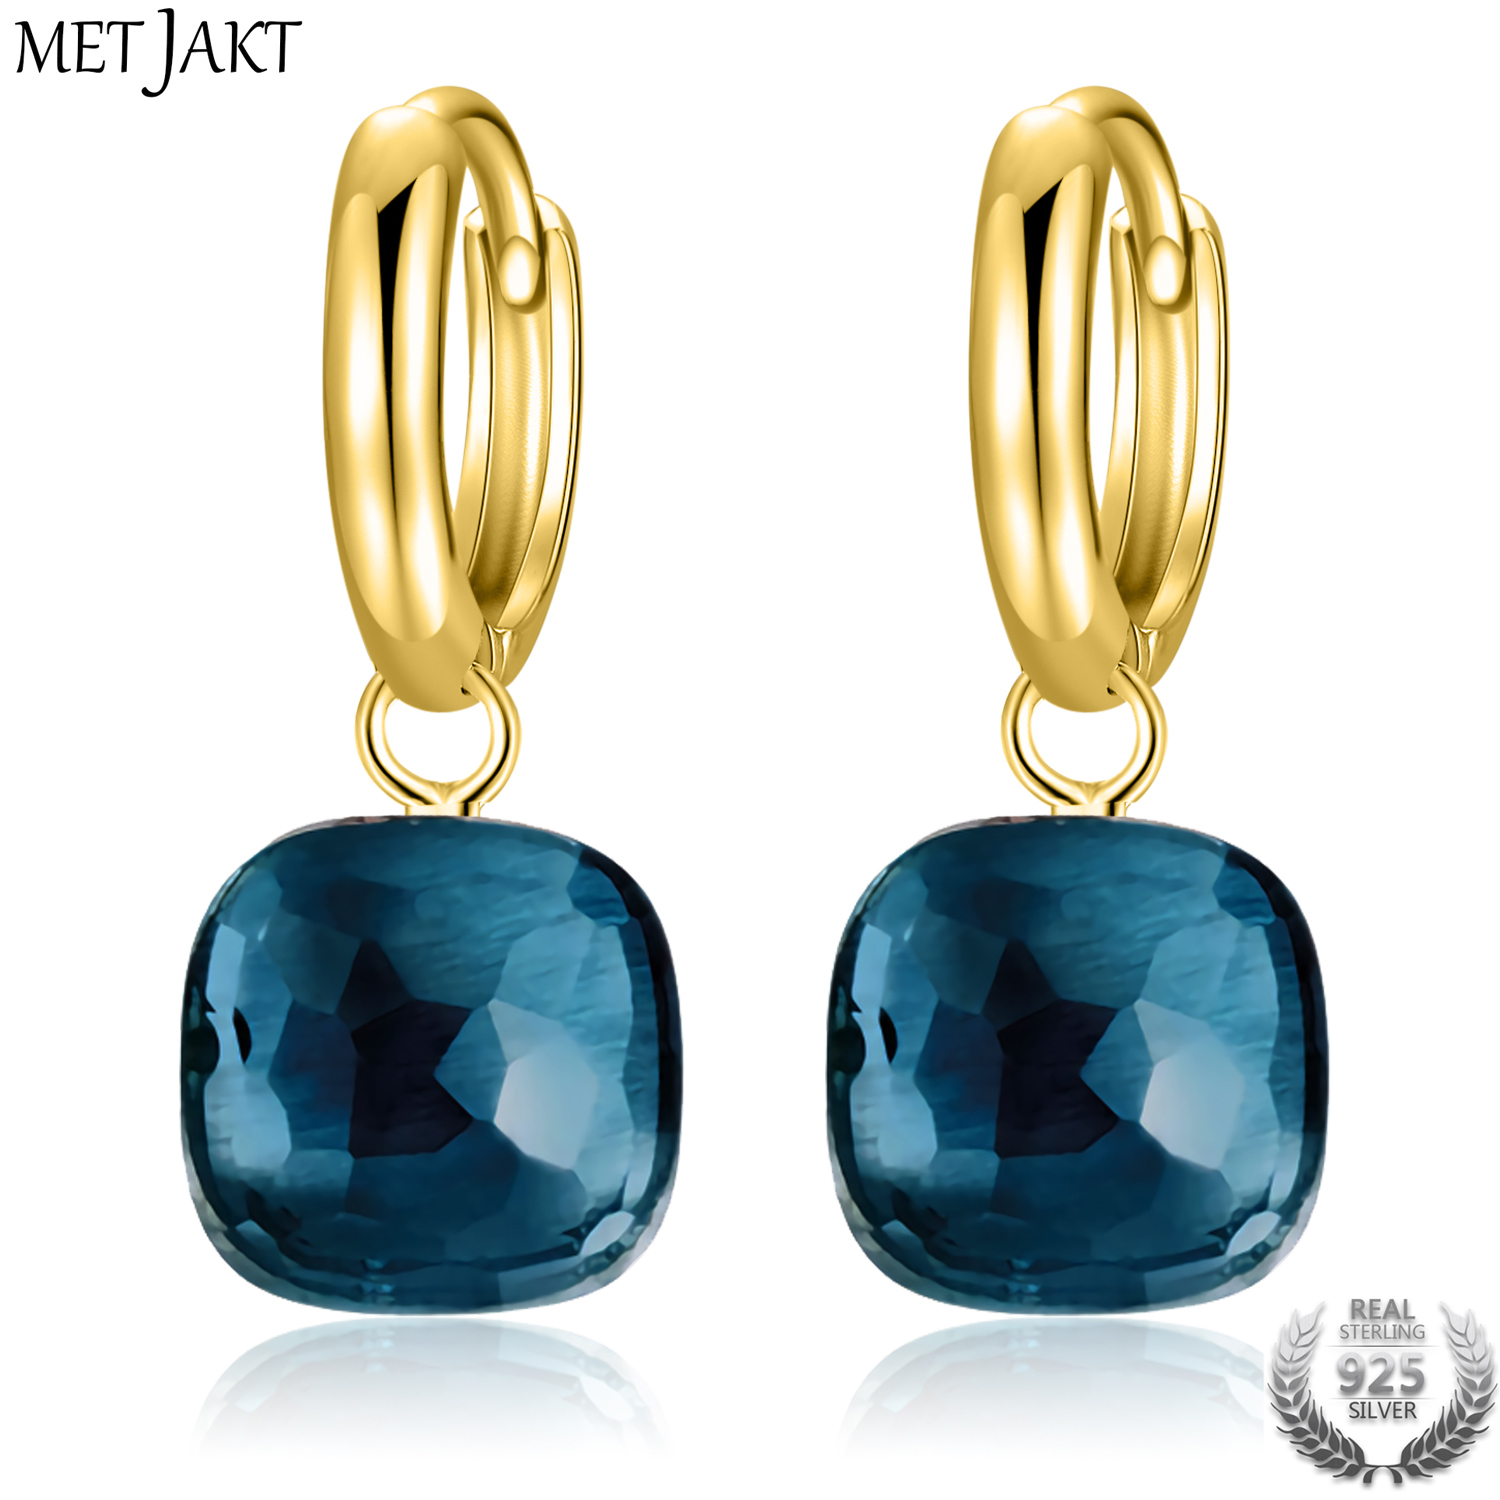 MetJakt Classic London Blue Topaz Earrings Solid Gold Color 925 Sterling Silver Elegant Earring for Lady